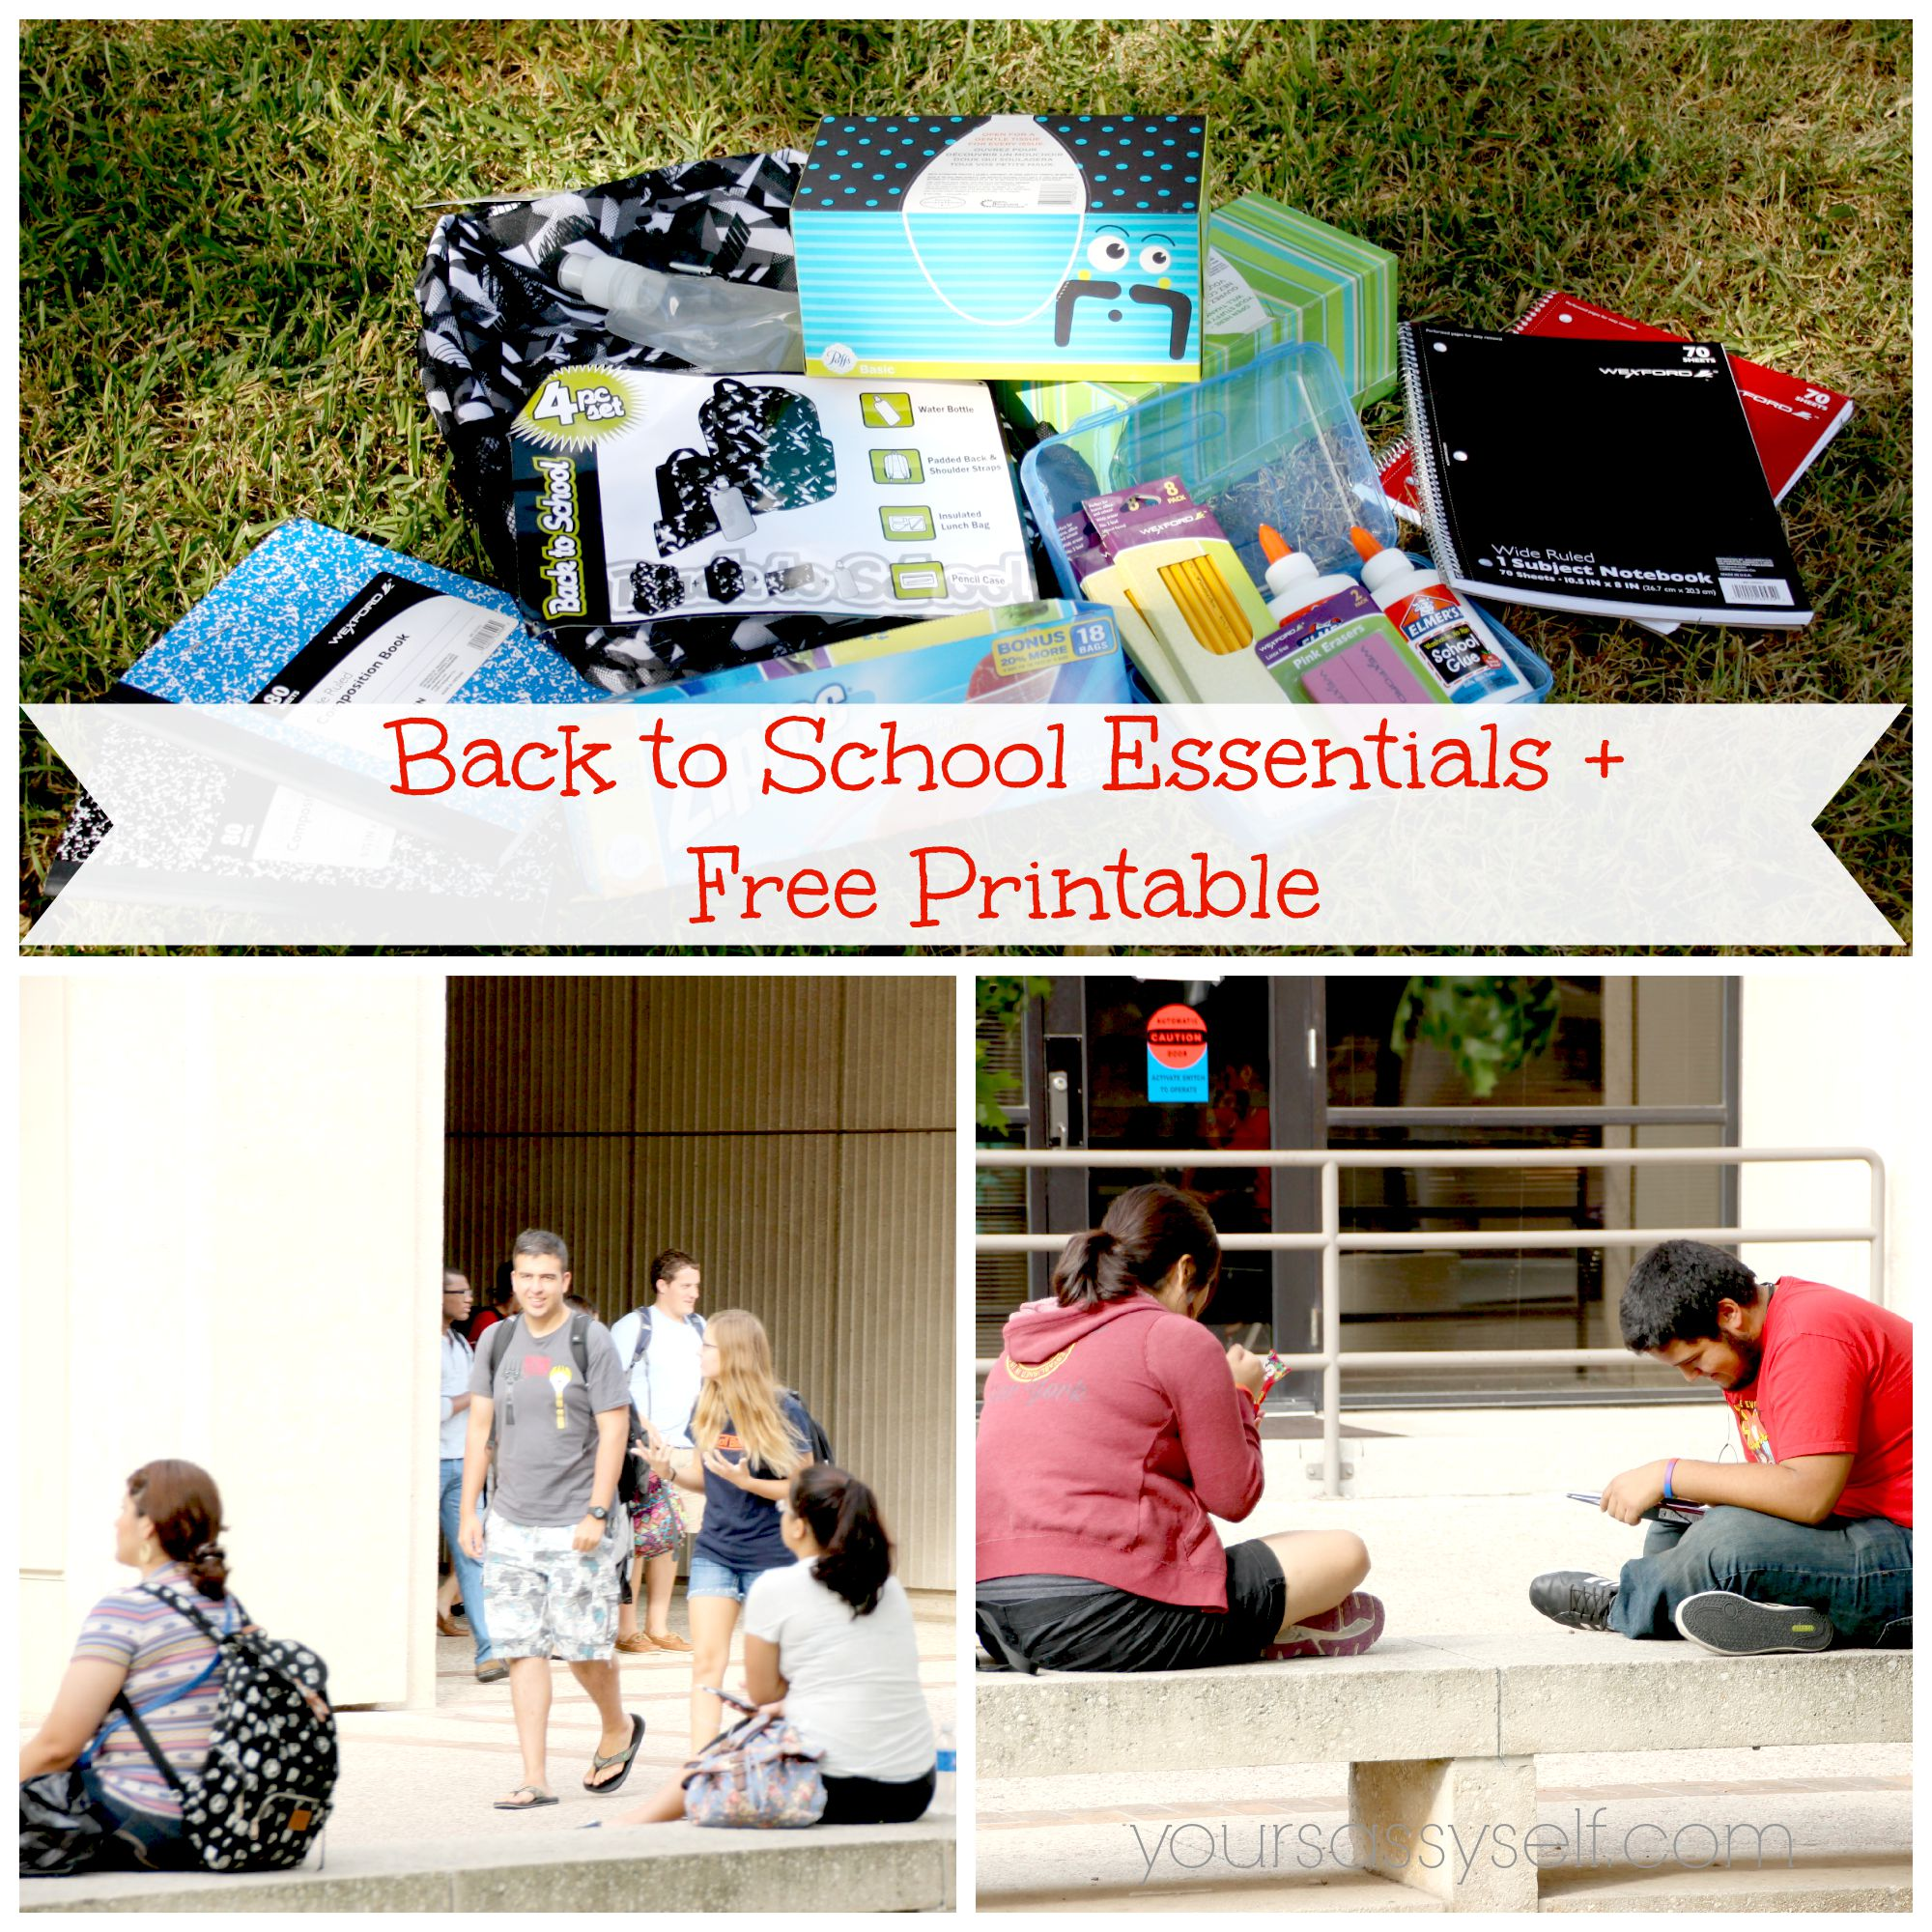 Back to School Essentials + Free Printable